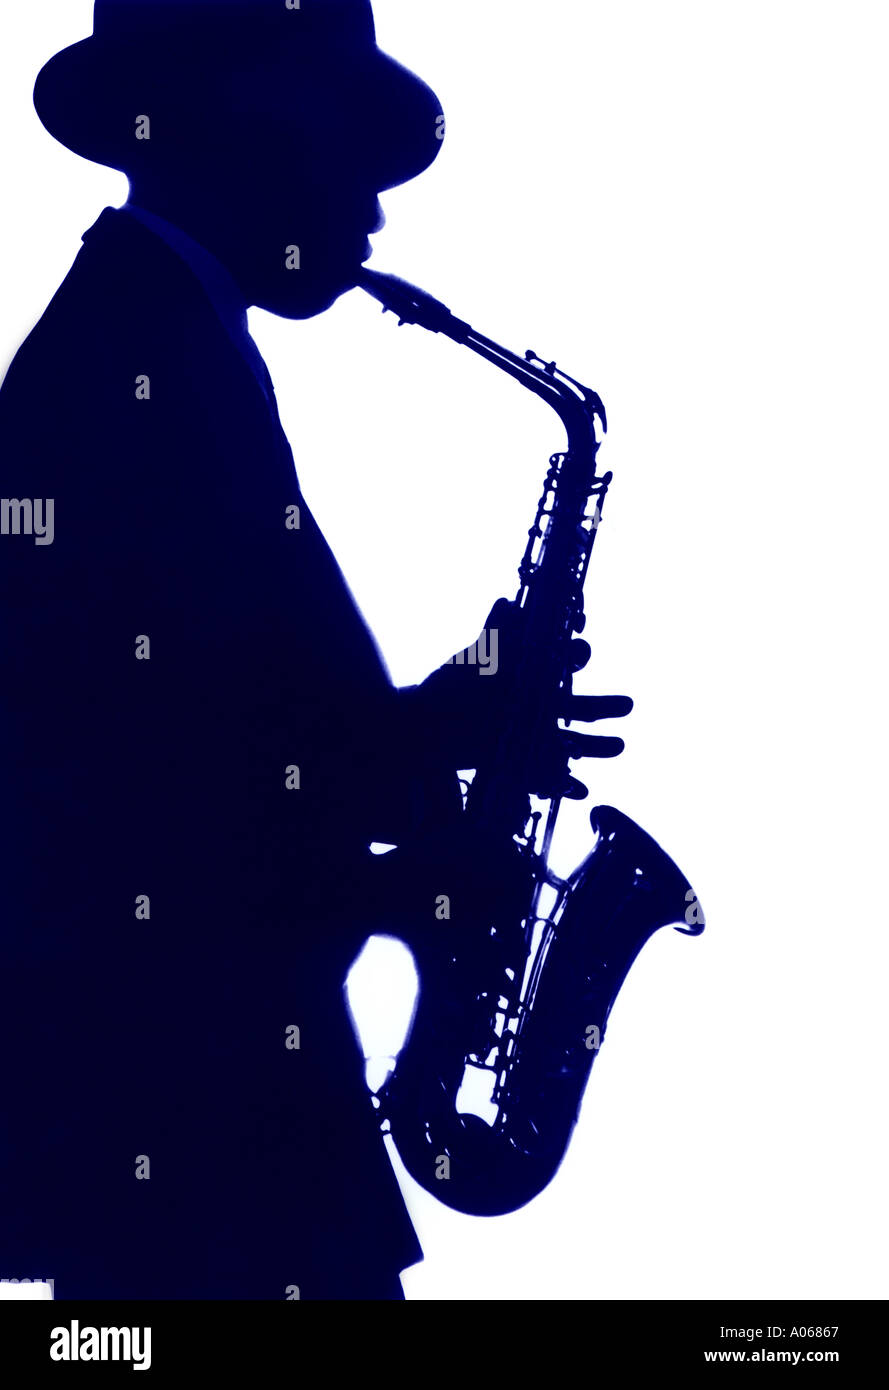 Silhouette of man playing a saxophone. - Stock Image